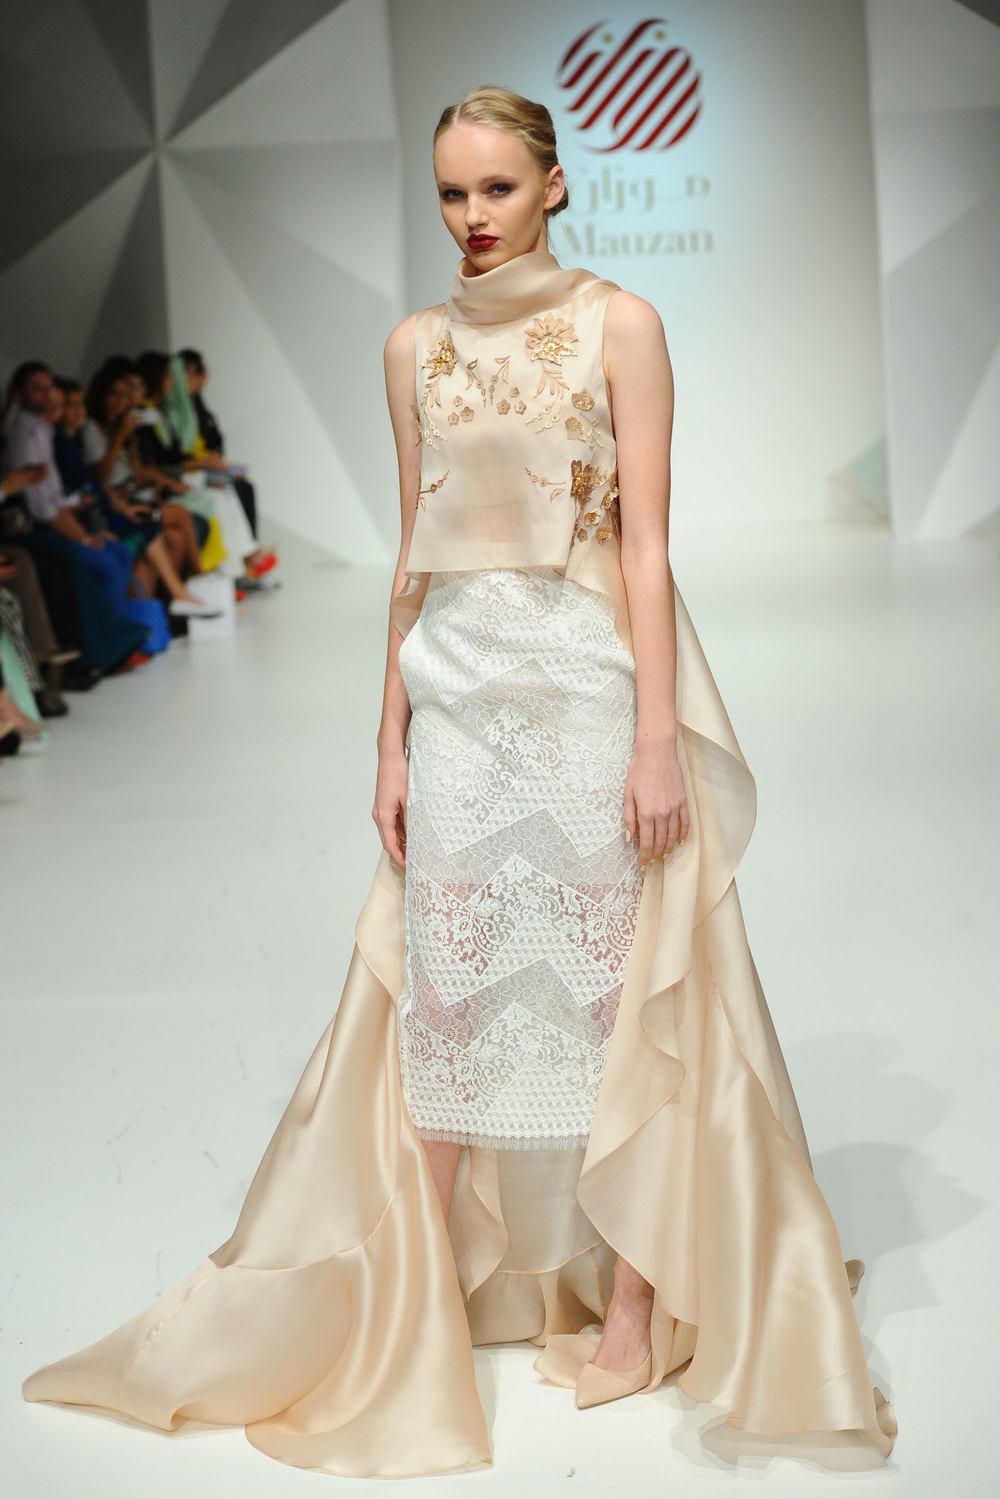 Mauzan at Fashion Forward Season 5.